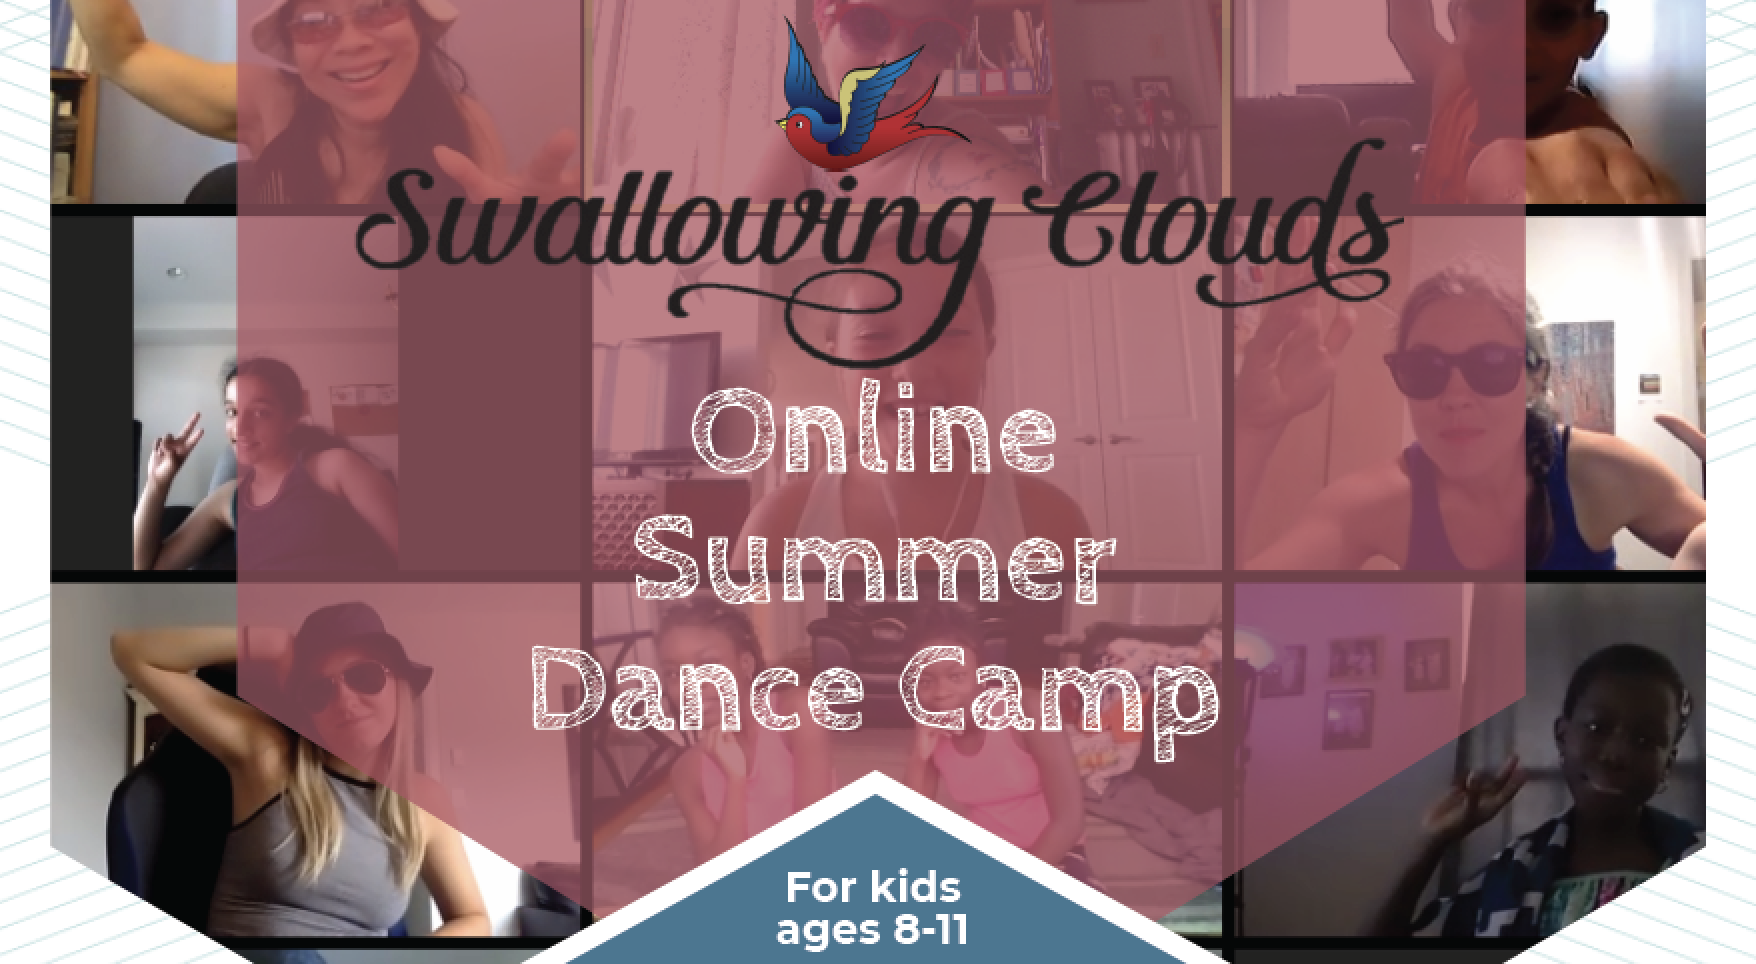 Join Us This August For Swallowing Clouds™ Online Dance Camp!